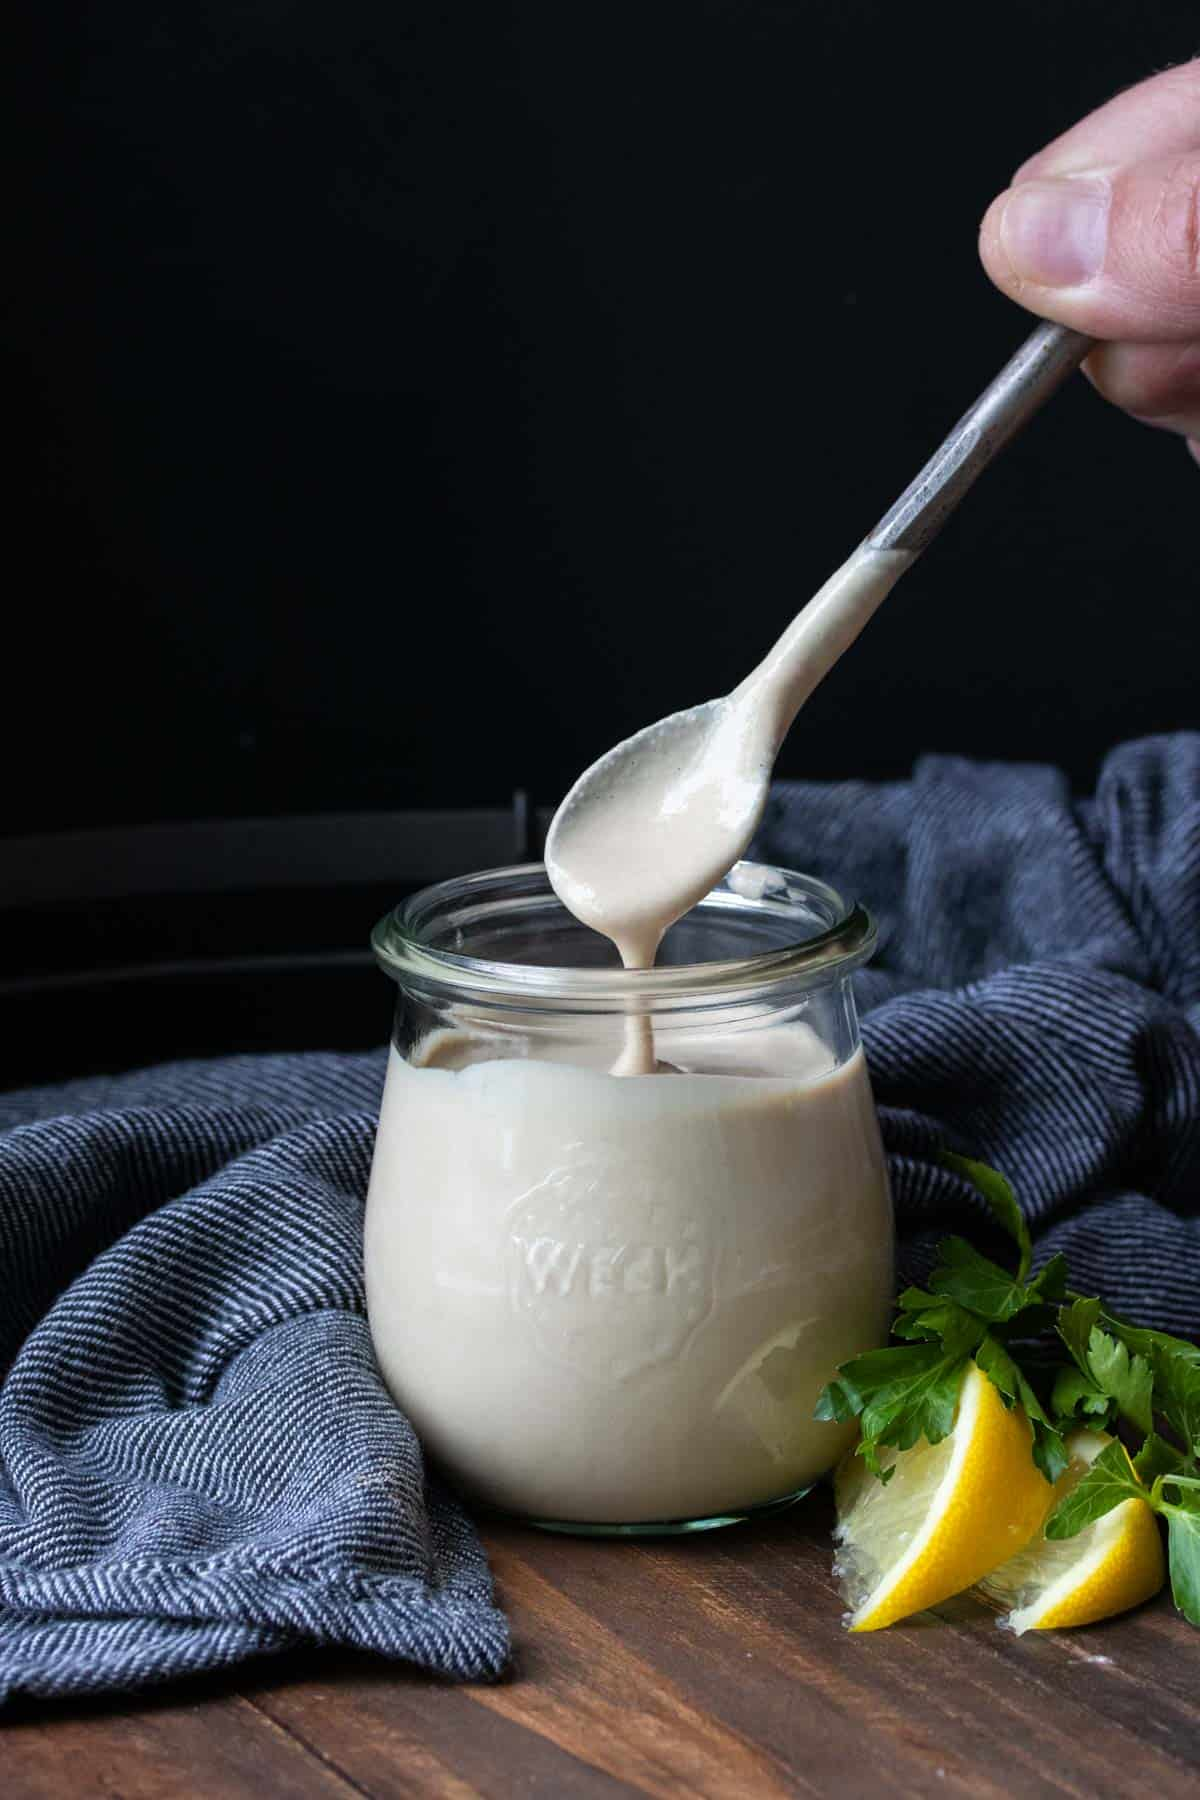 Spoon dripping with creamy tahini sauce over a glass jar